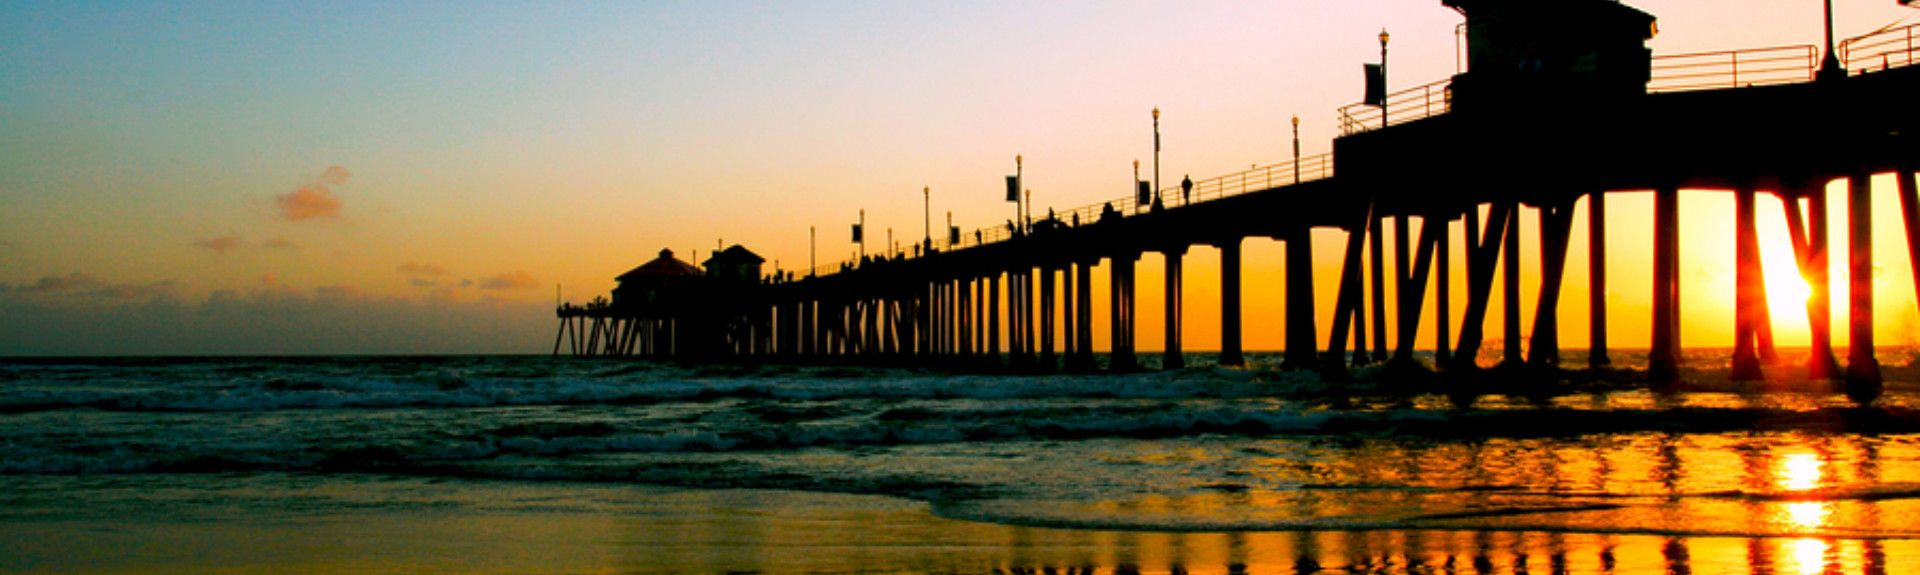 Playa para perros Huntington, Huntington Beach, California, Estados Unidos